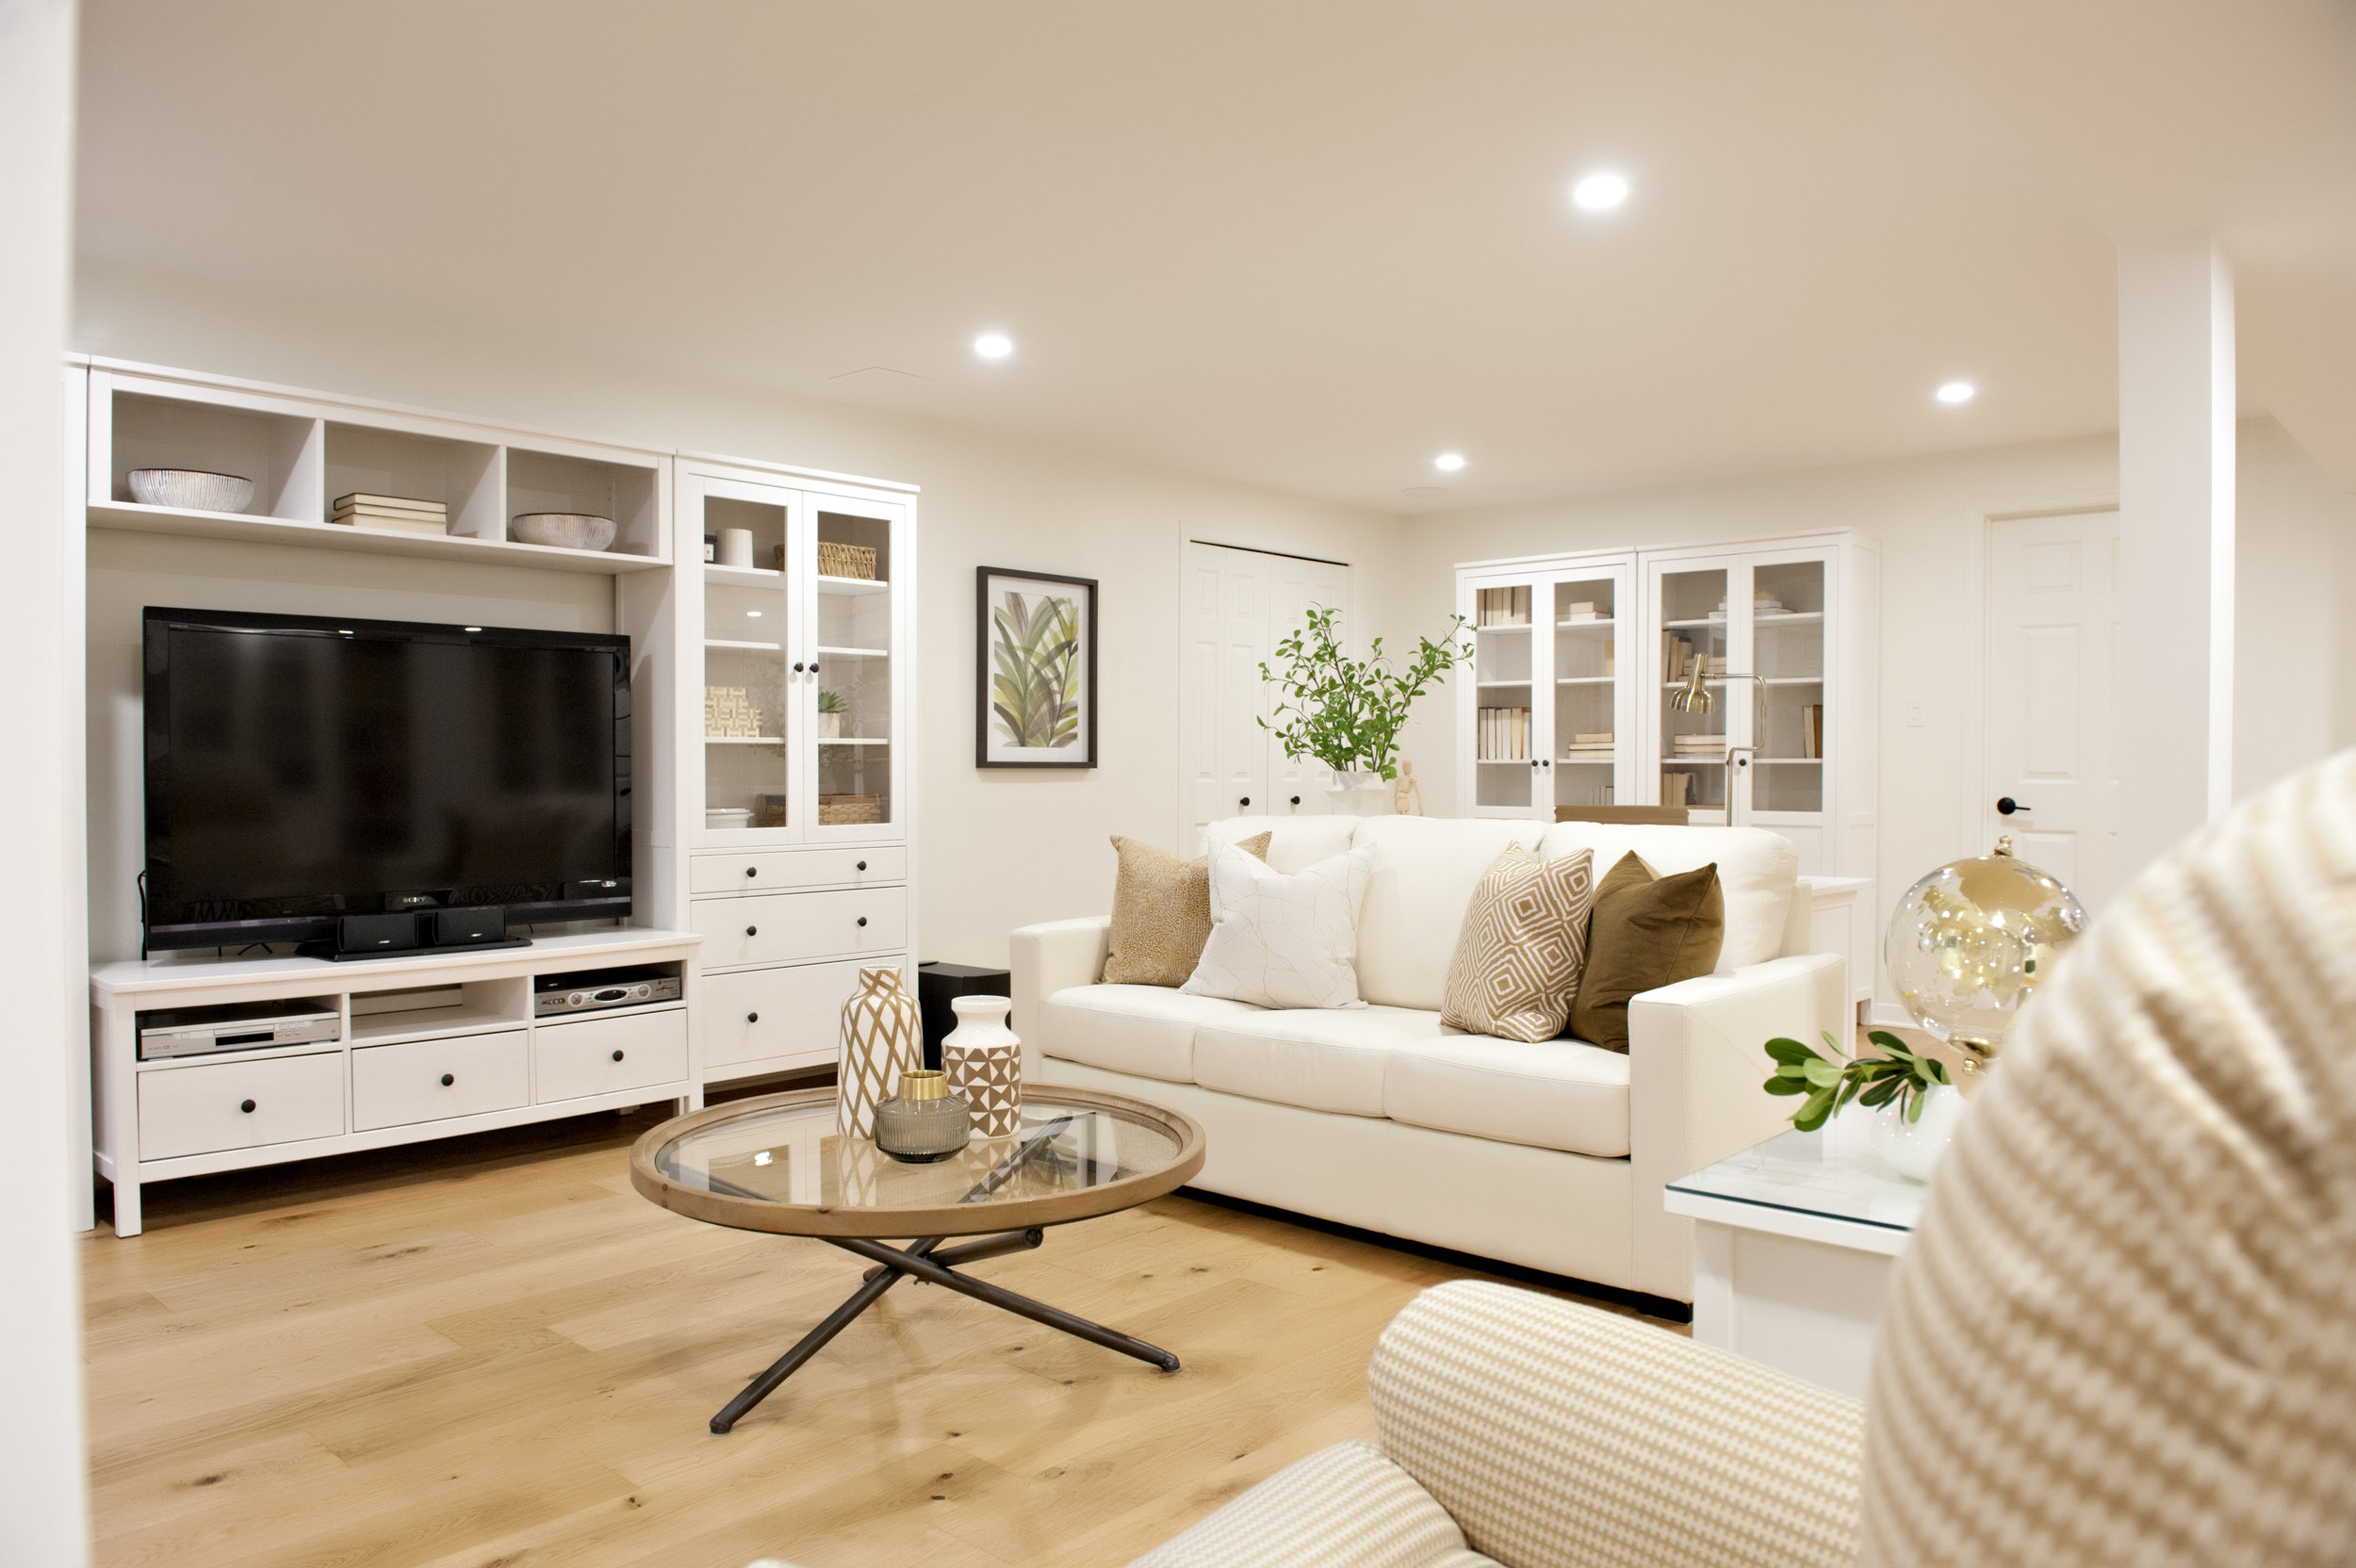 cedar-brae-basement-family-area-couch